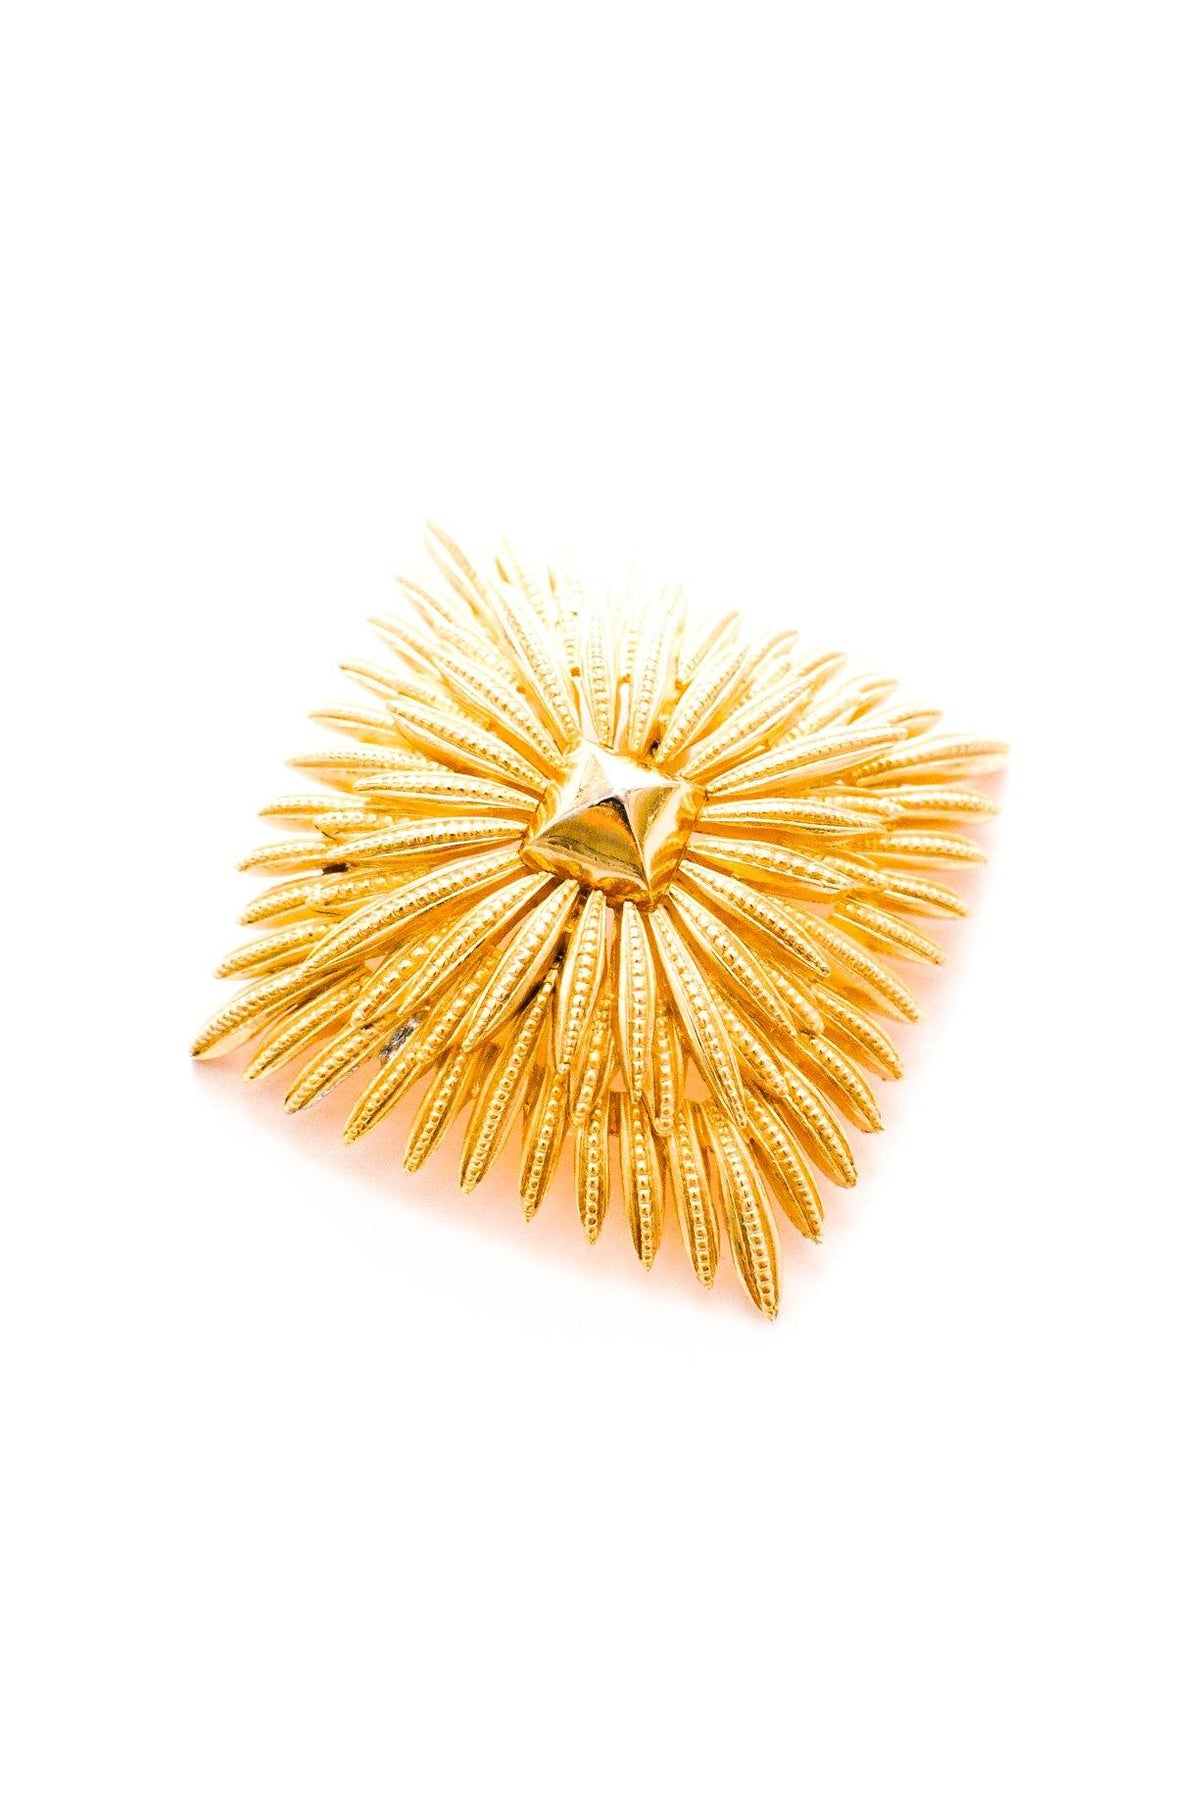 Vintage Trifari statement burst brooch from Sweet & Spark.